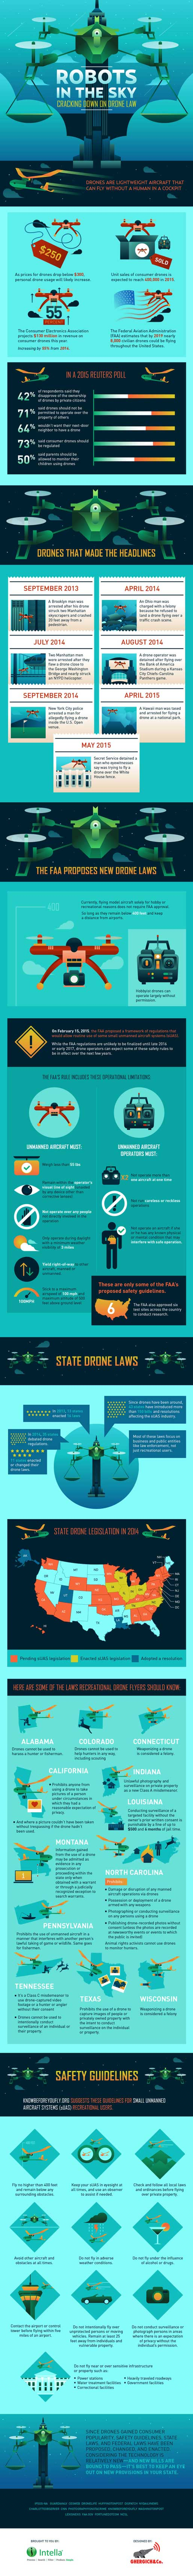 drone-laws